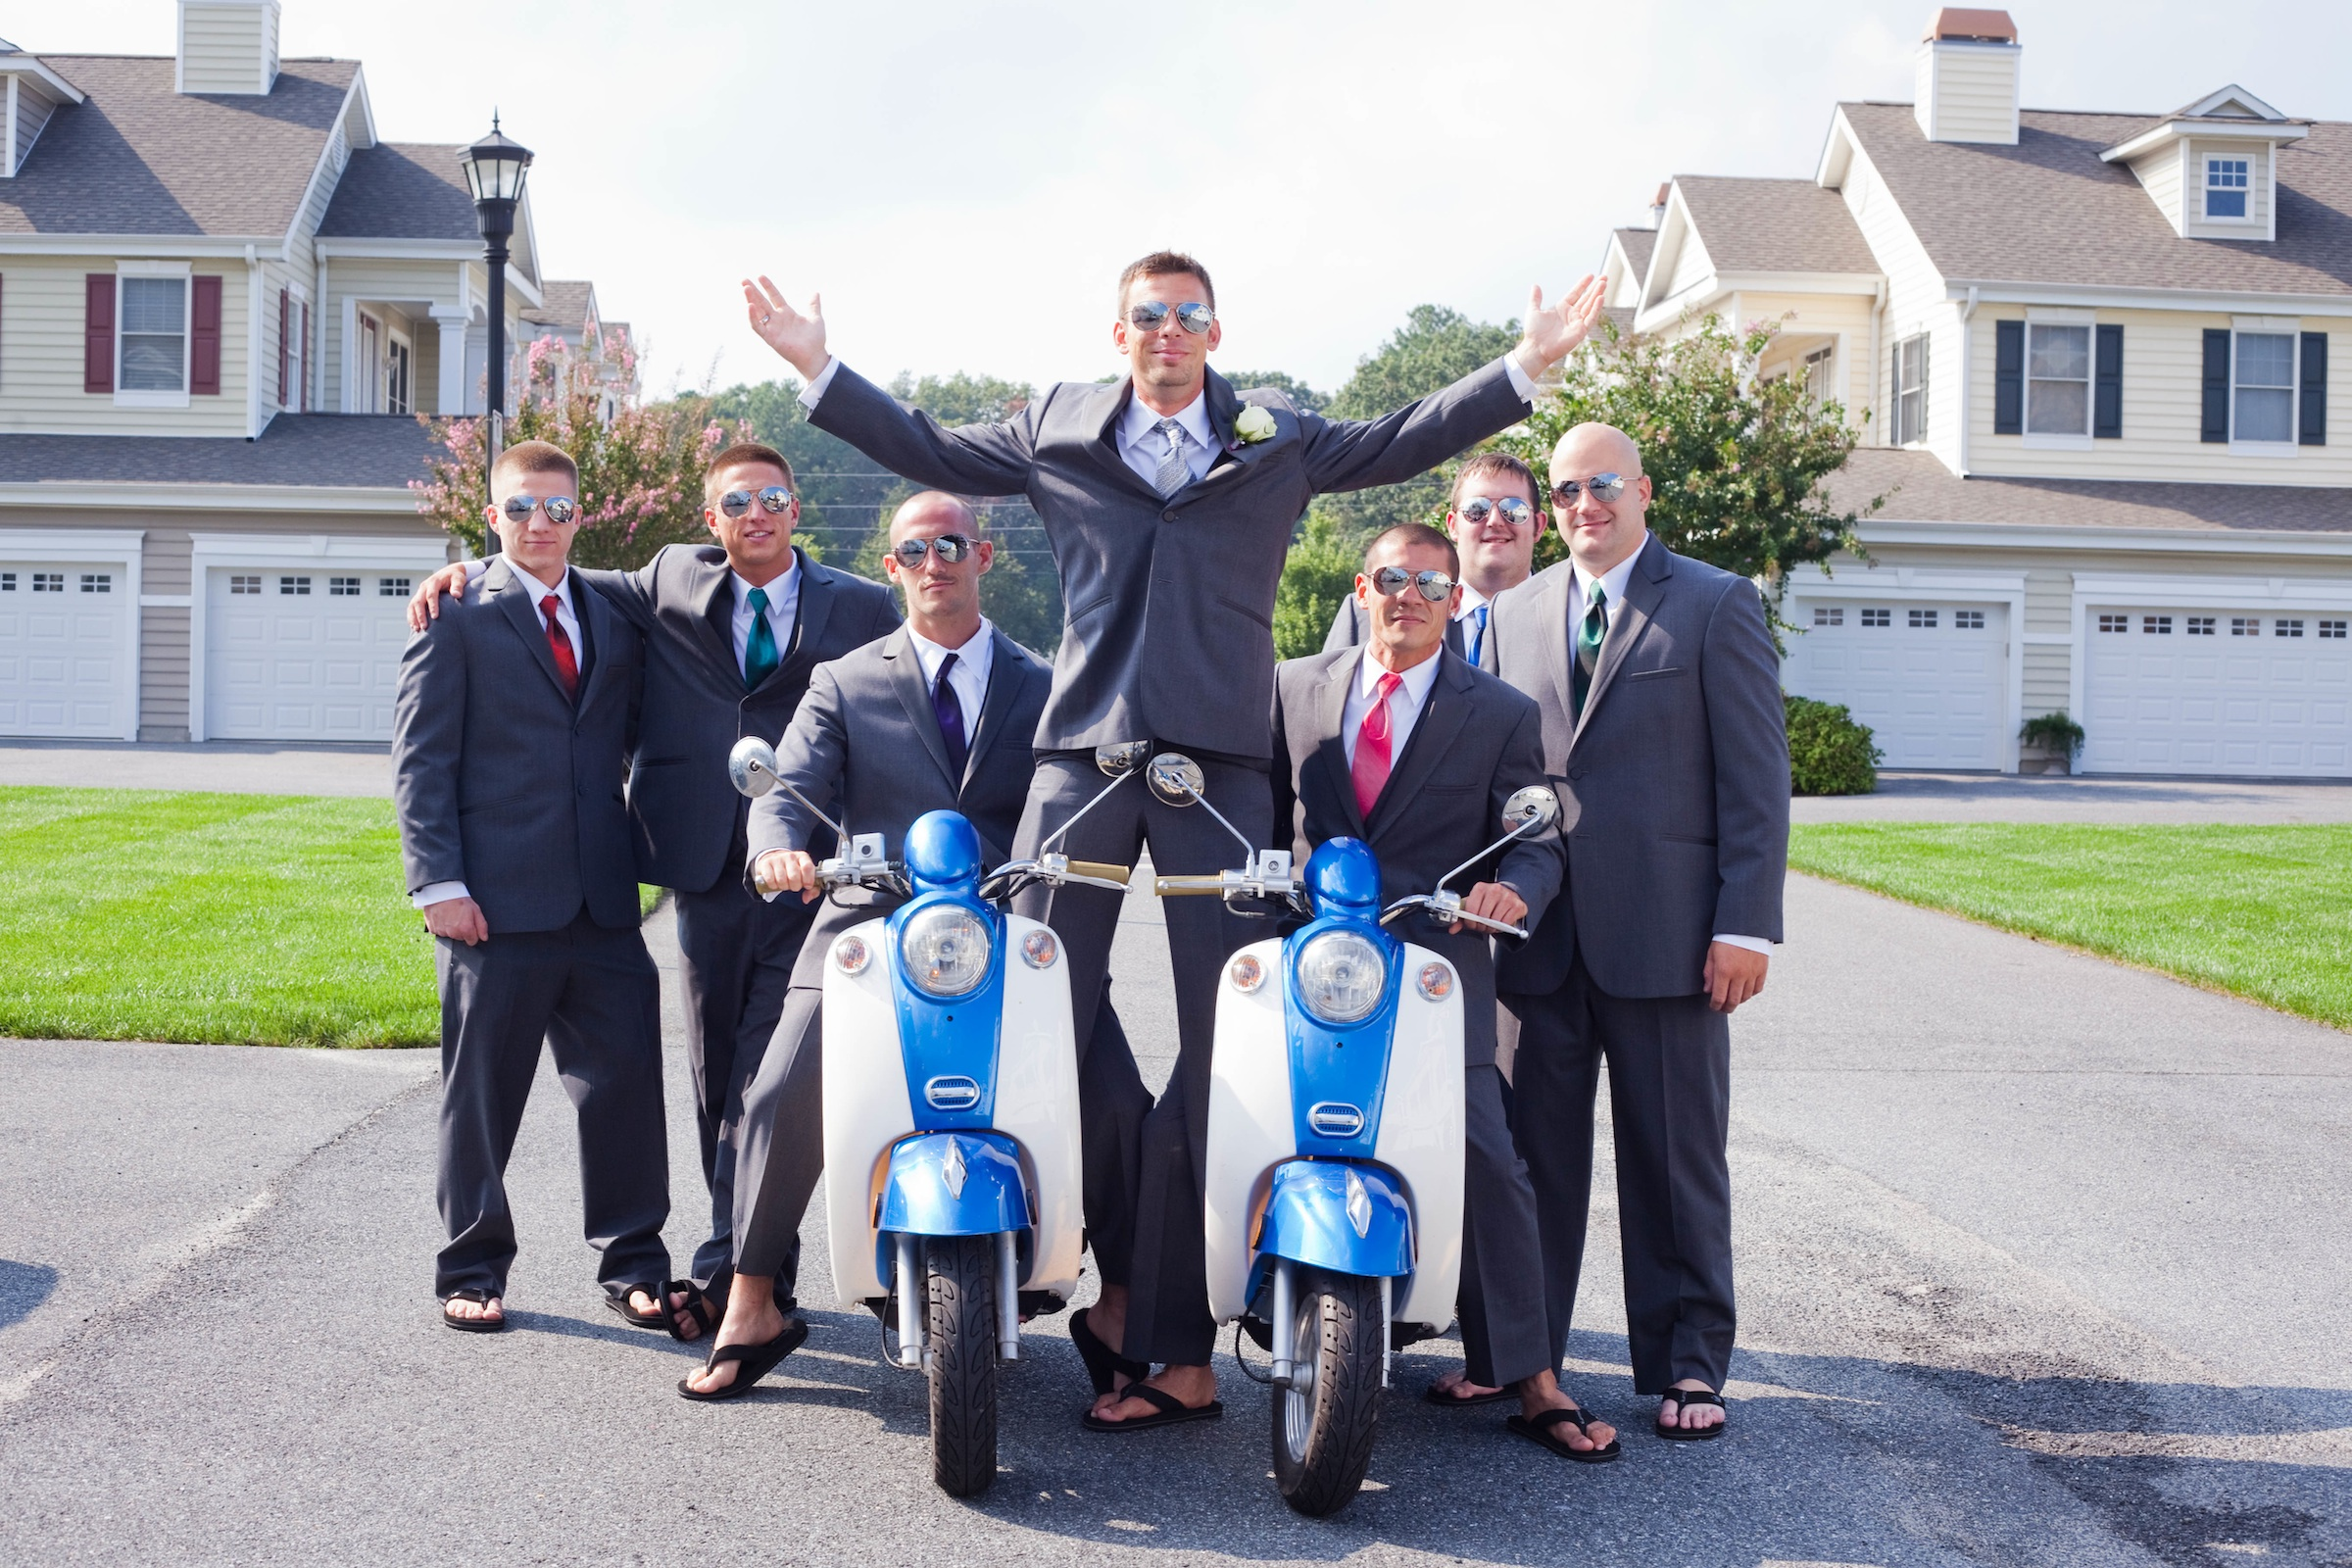 Beach-wedding-in-delaware-groom-with-groomsmen.original